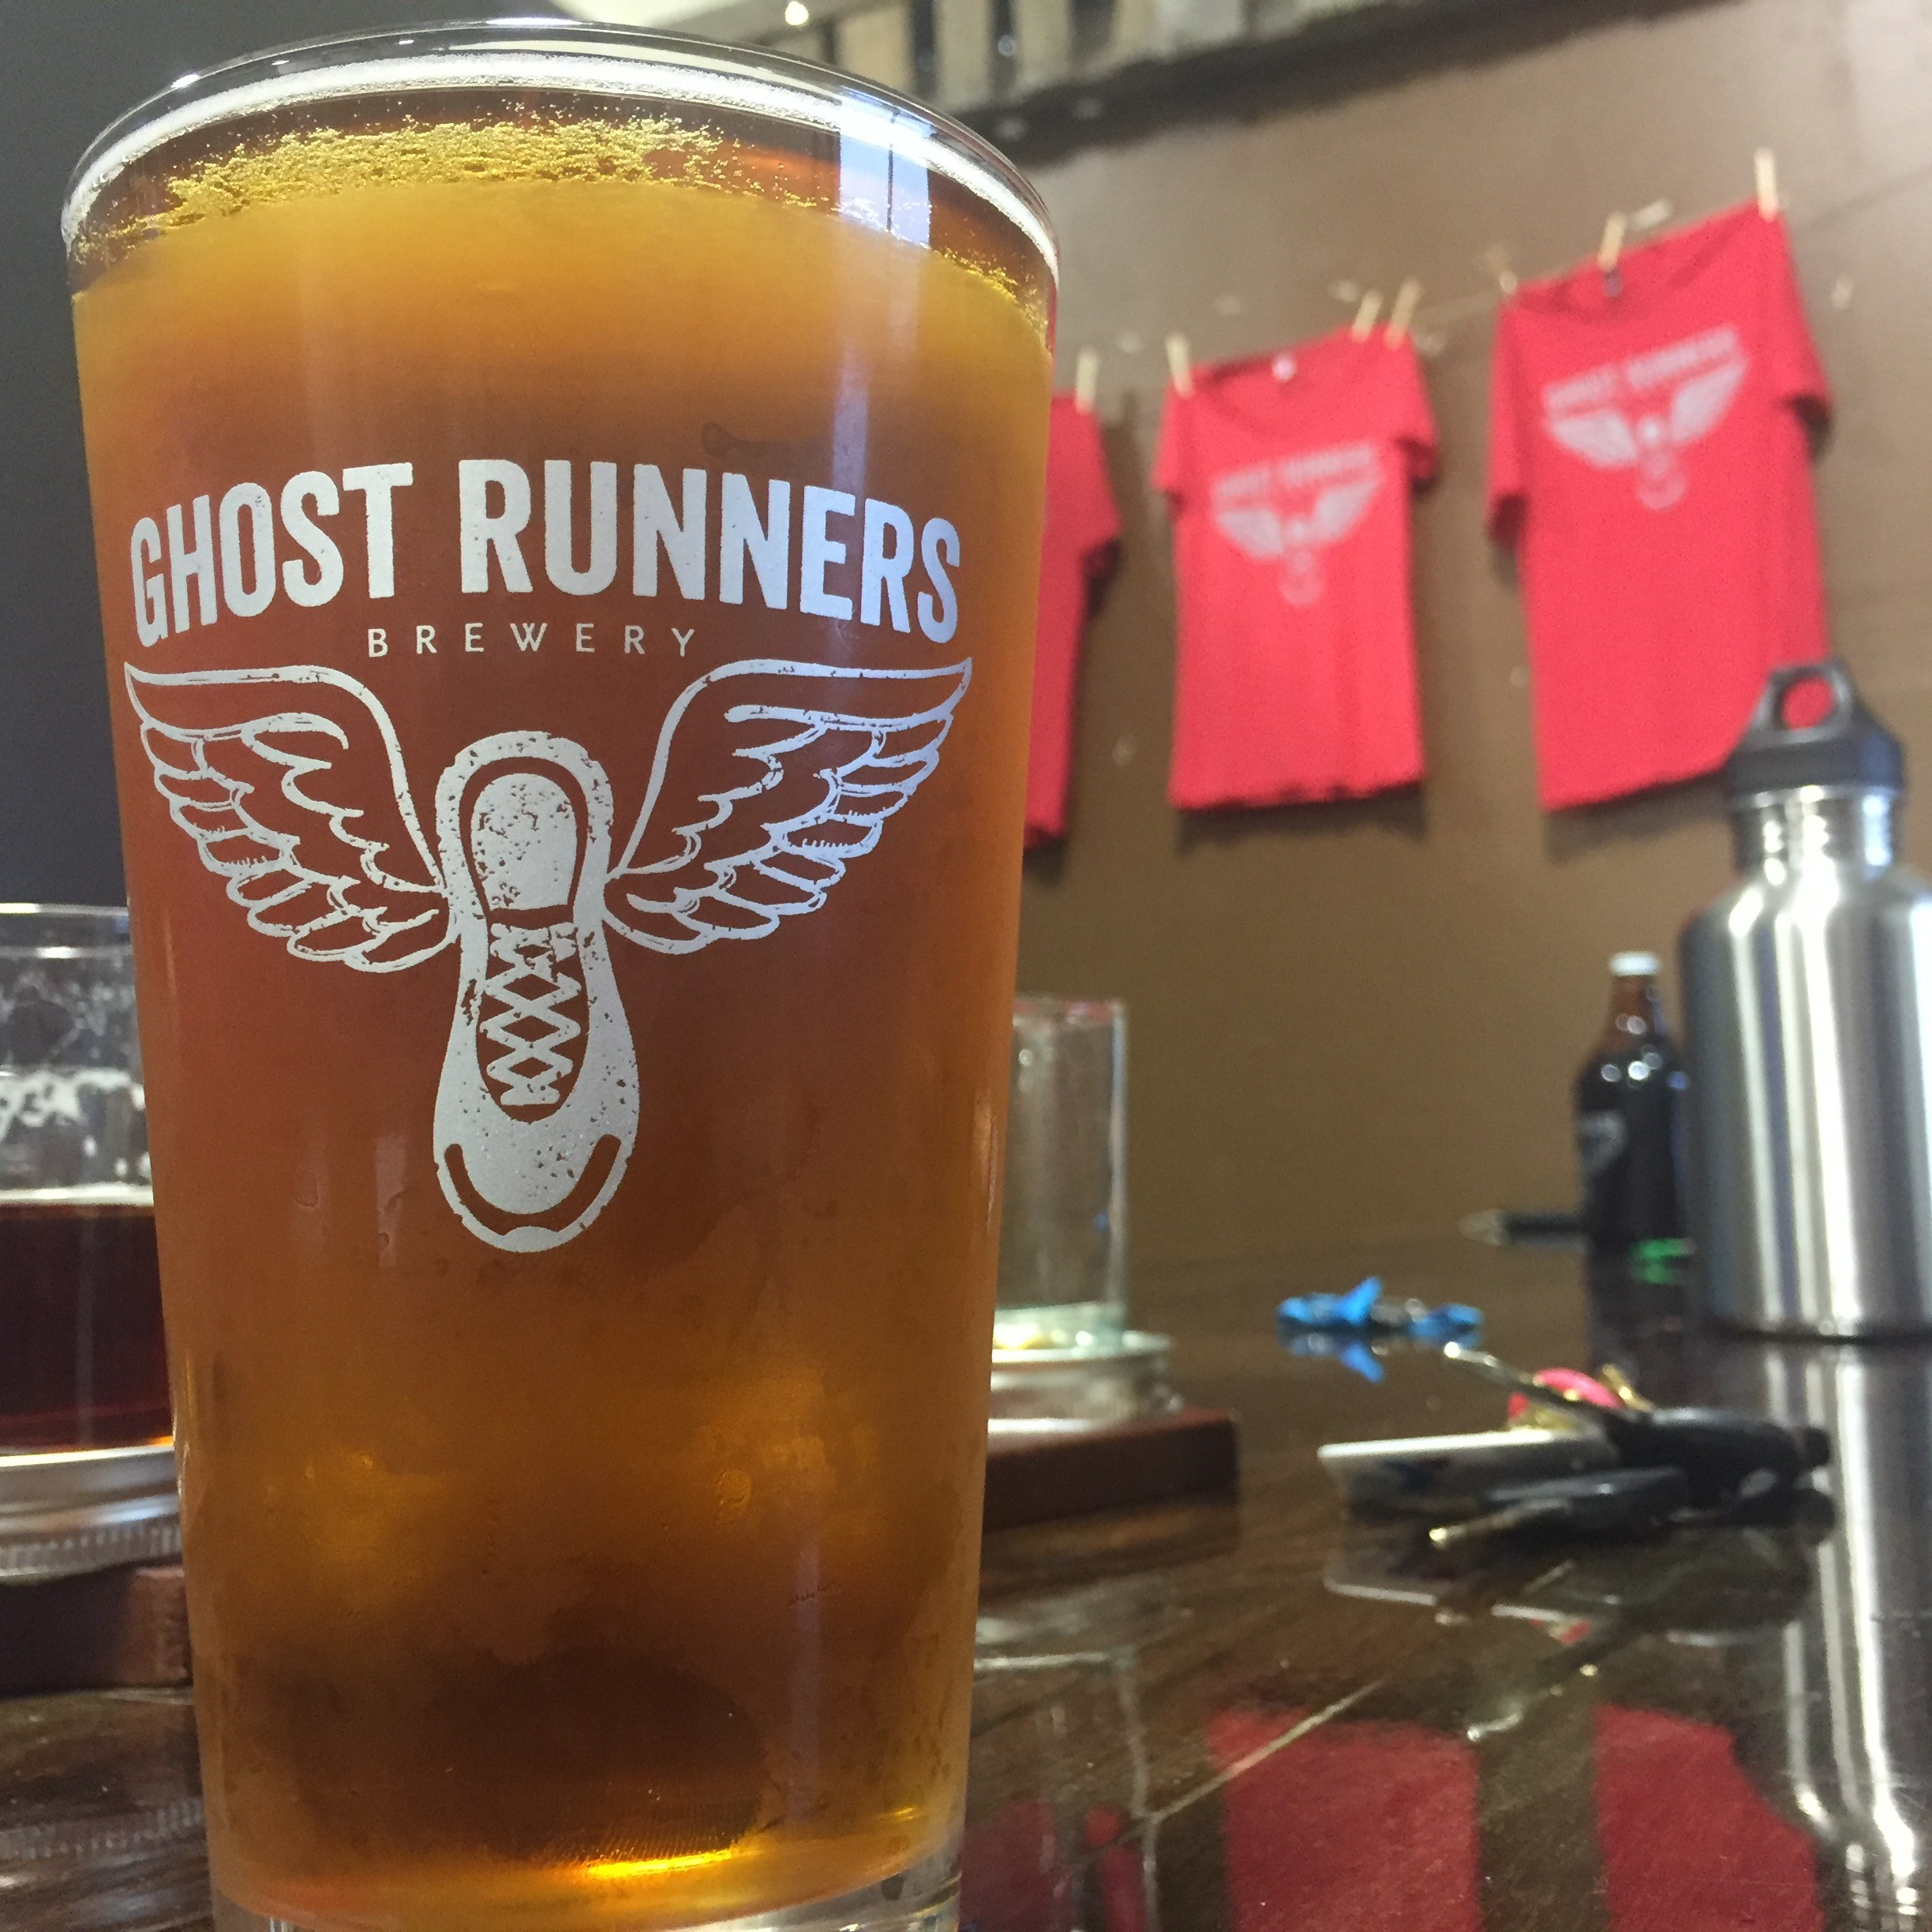 Performance Pale  A Rye Pale Ale By Ghost Runners Brewery (photo Courtesy  Of Zzoom